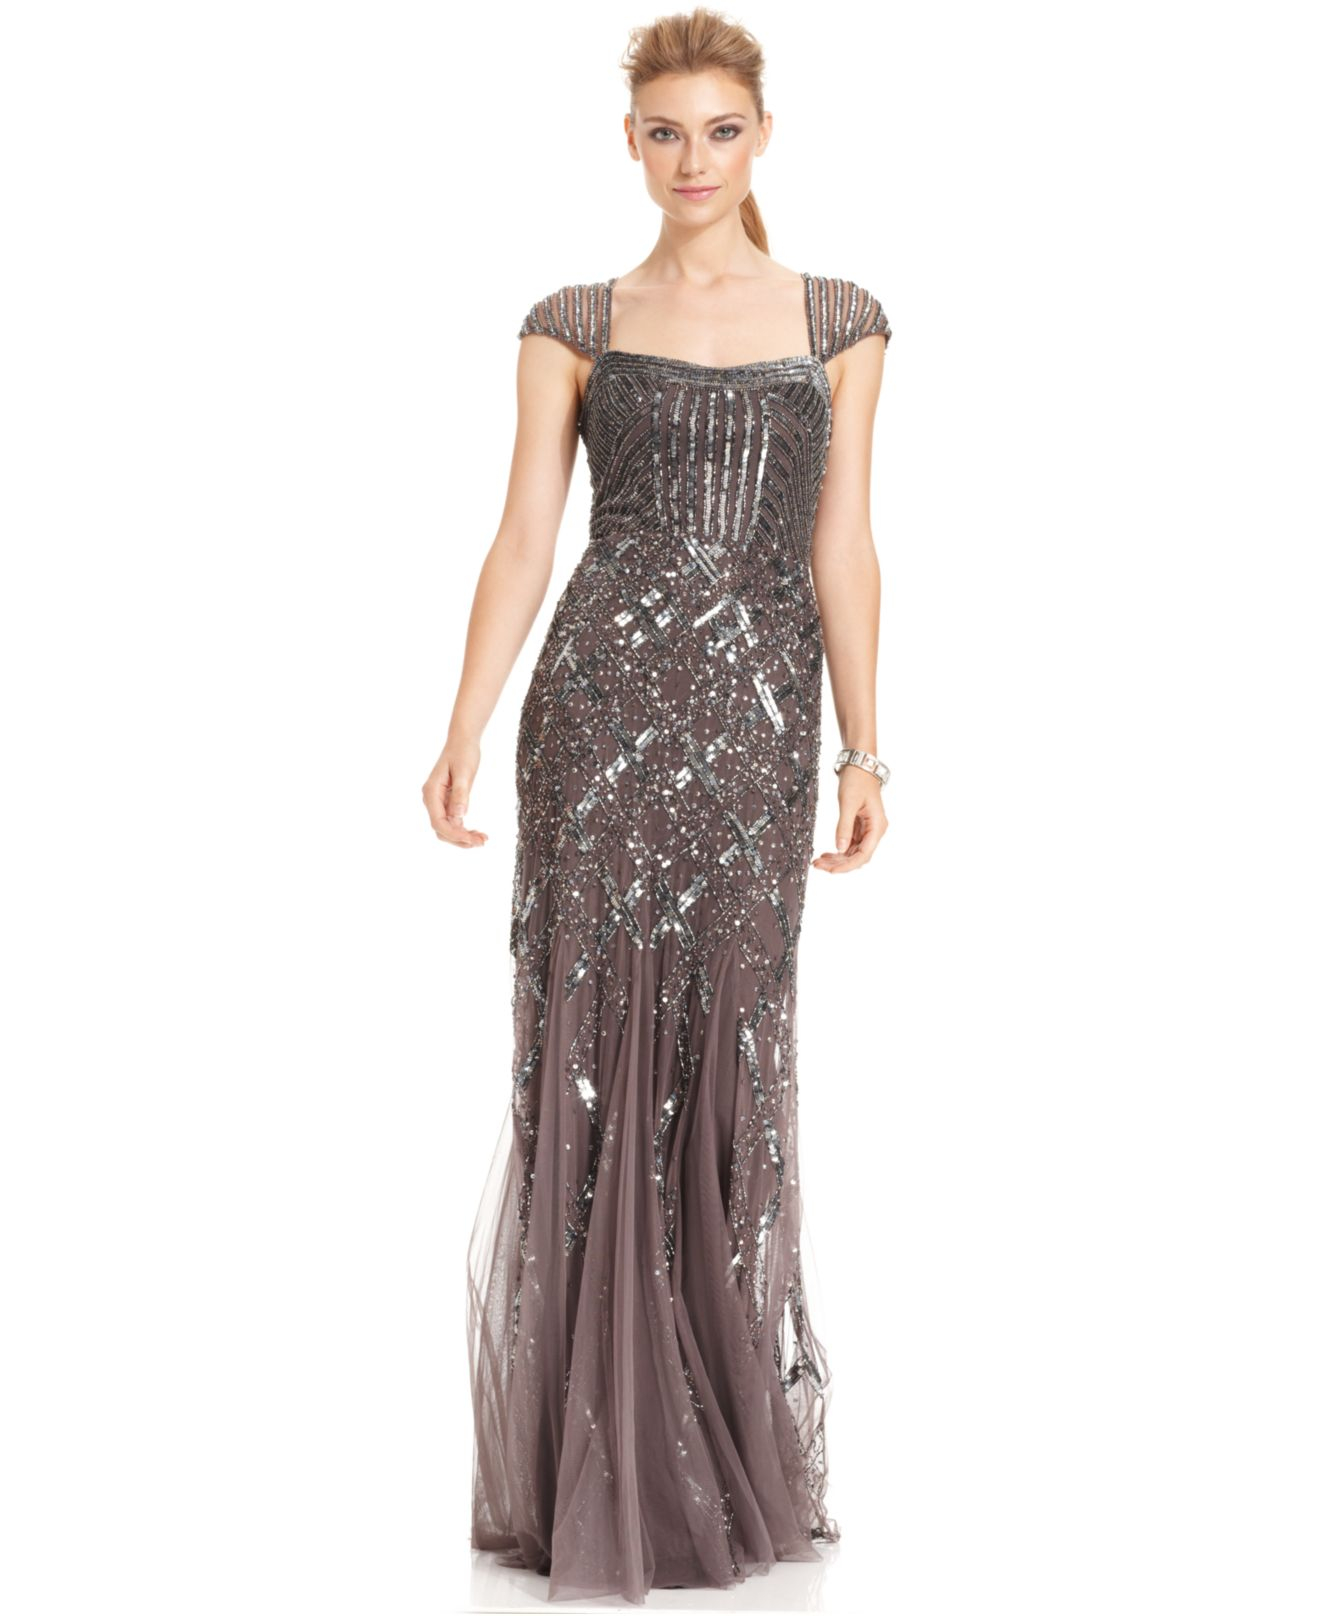 Lyst  Adrianna Papell CapSleeve Sequined Gown in Metallic